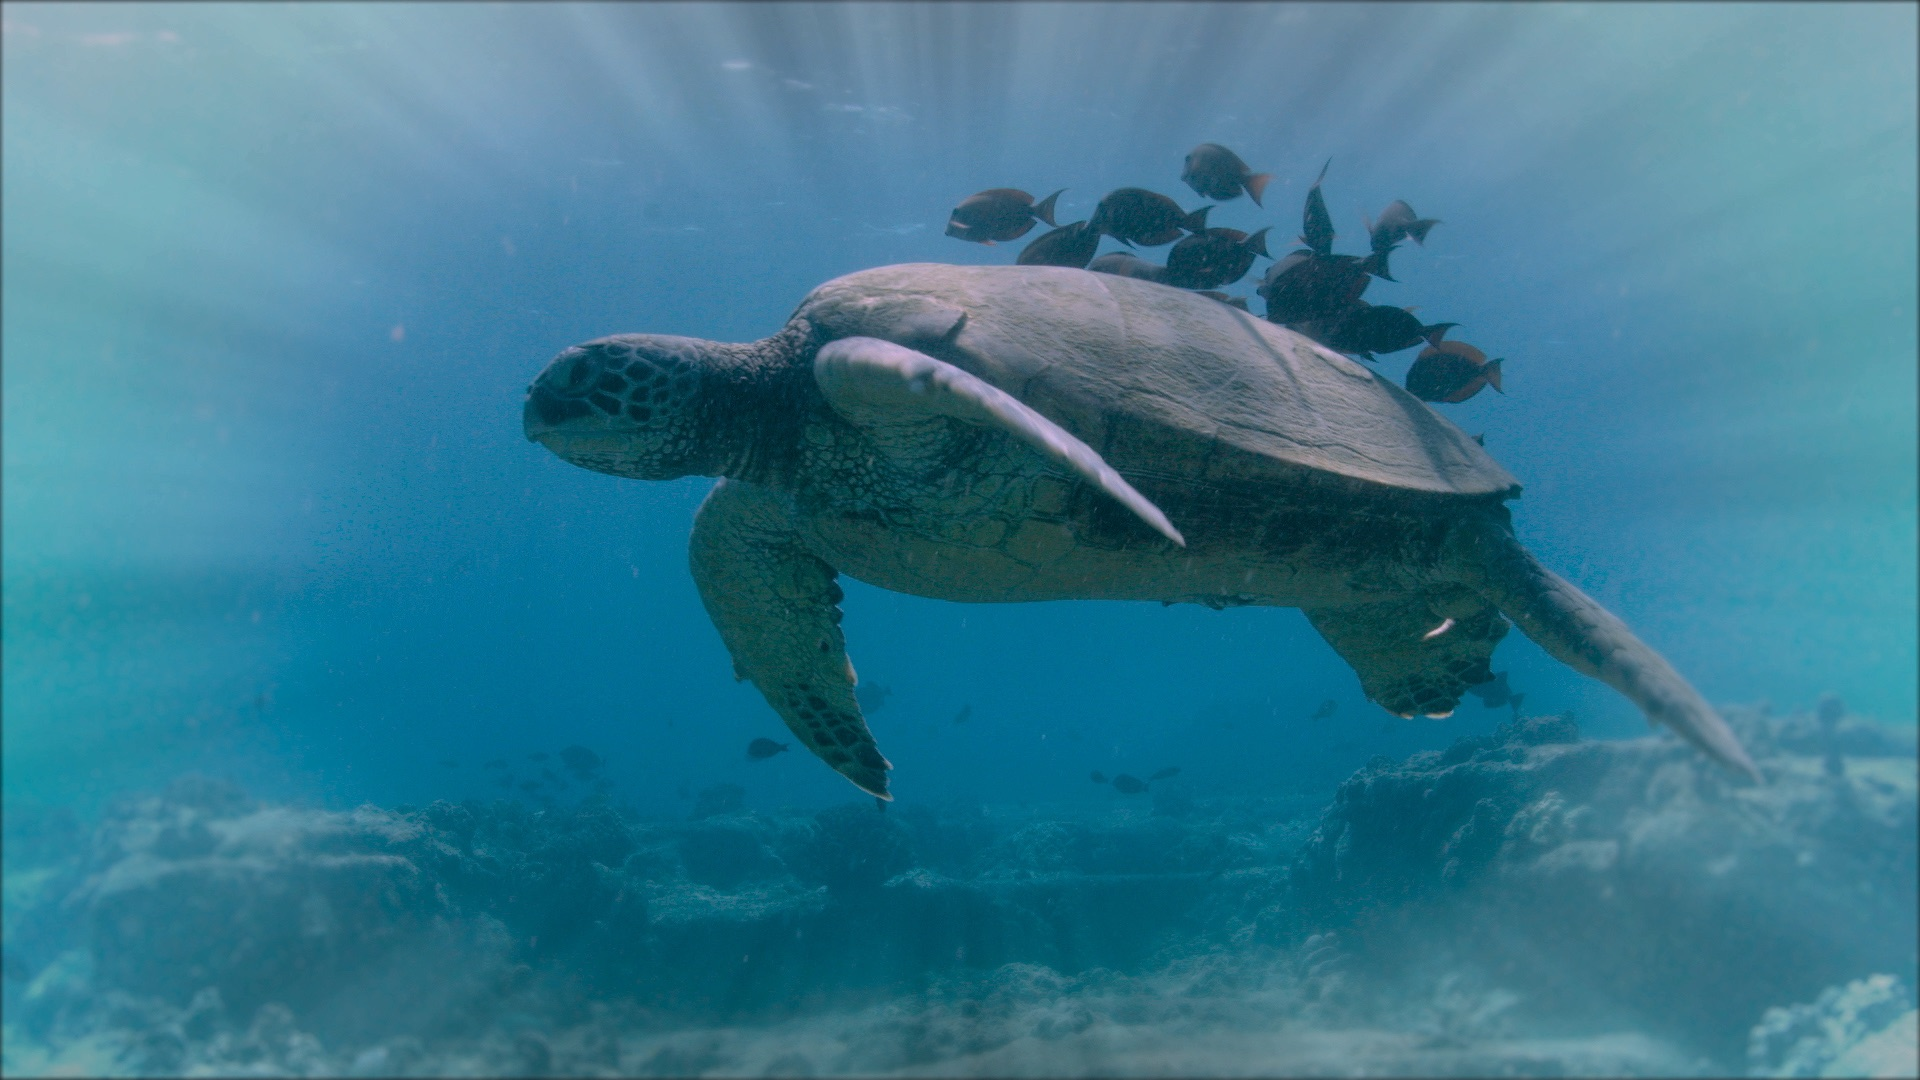 My Haggan Dream - A turtle swims while fish clean its shell. Photo by Sisbro Studios